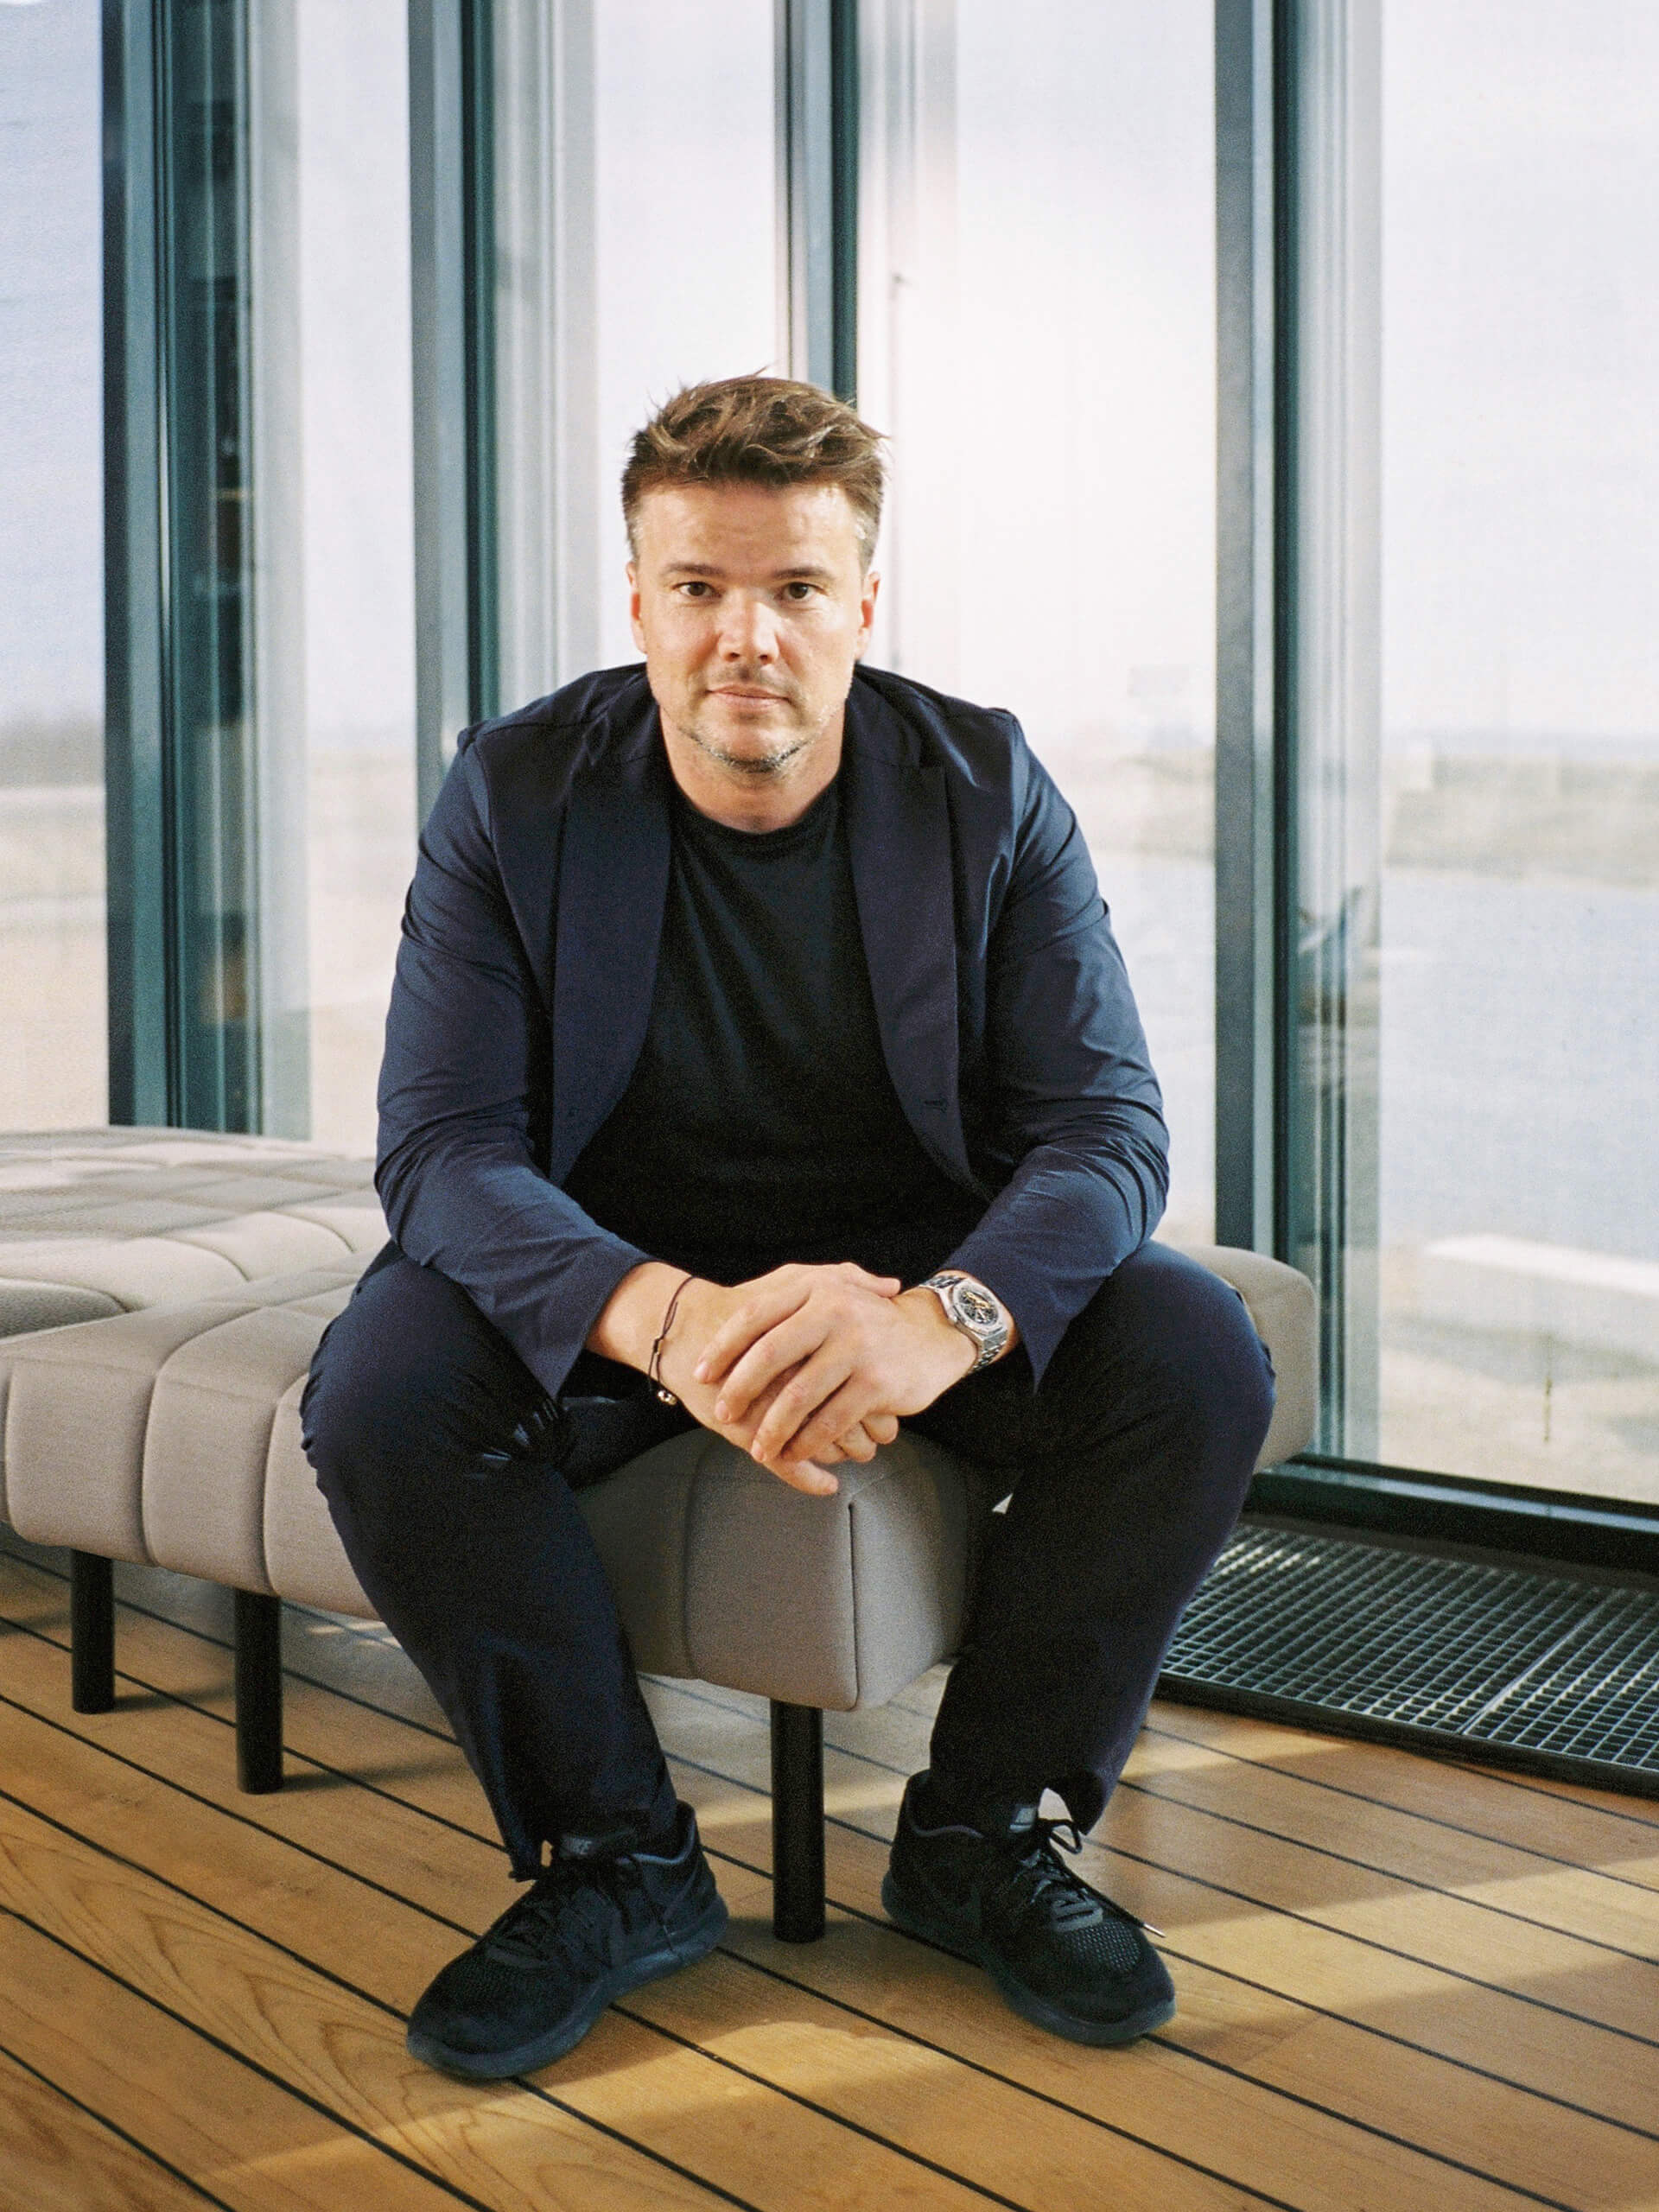 Bjarke Ingels of Bjarke Ingels Group (BIG) pictured here with the Voxel Sofa | Voxel Sofa by BIG for Common Seating | STIRworld